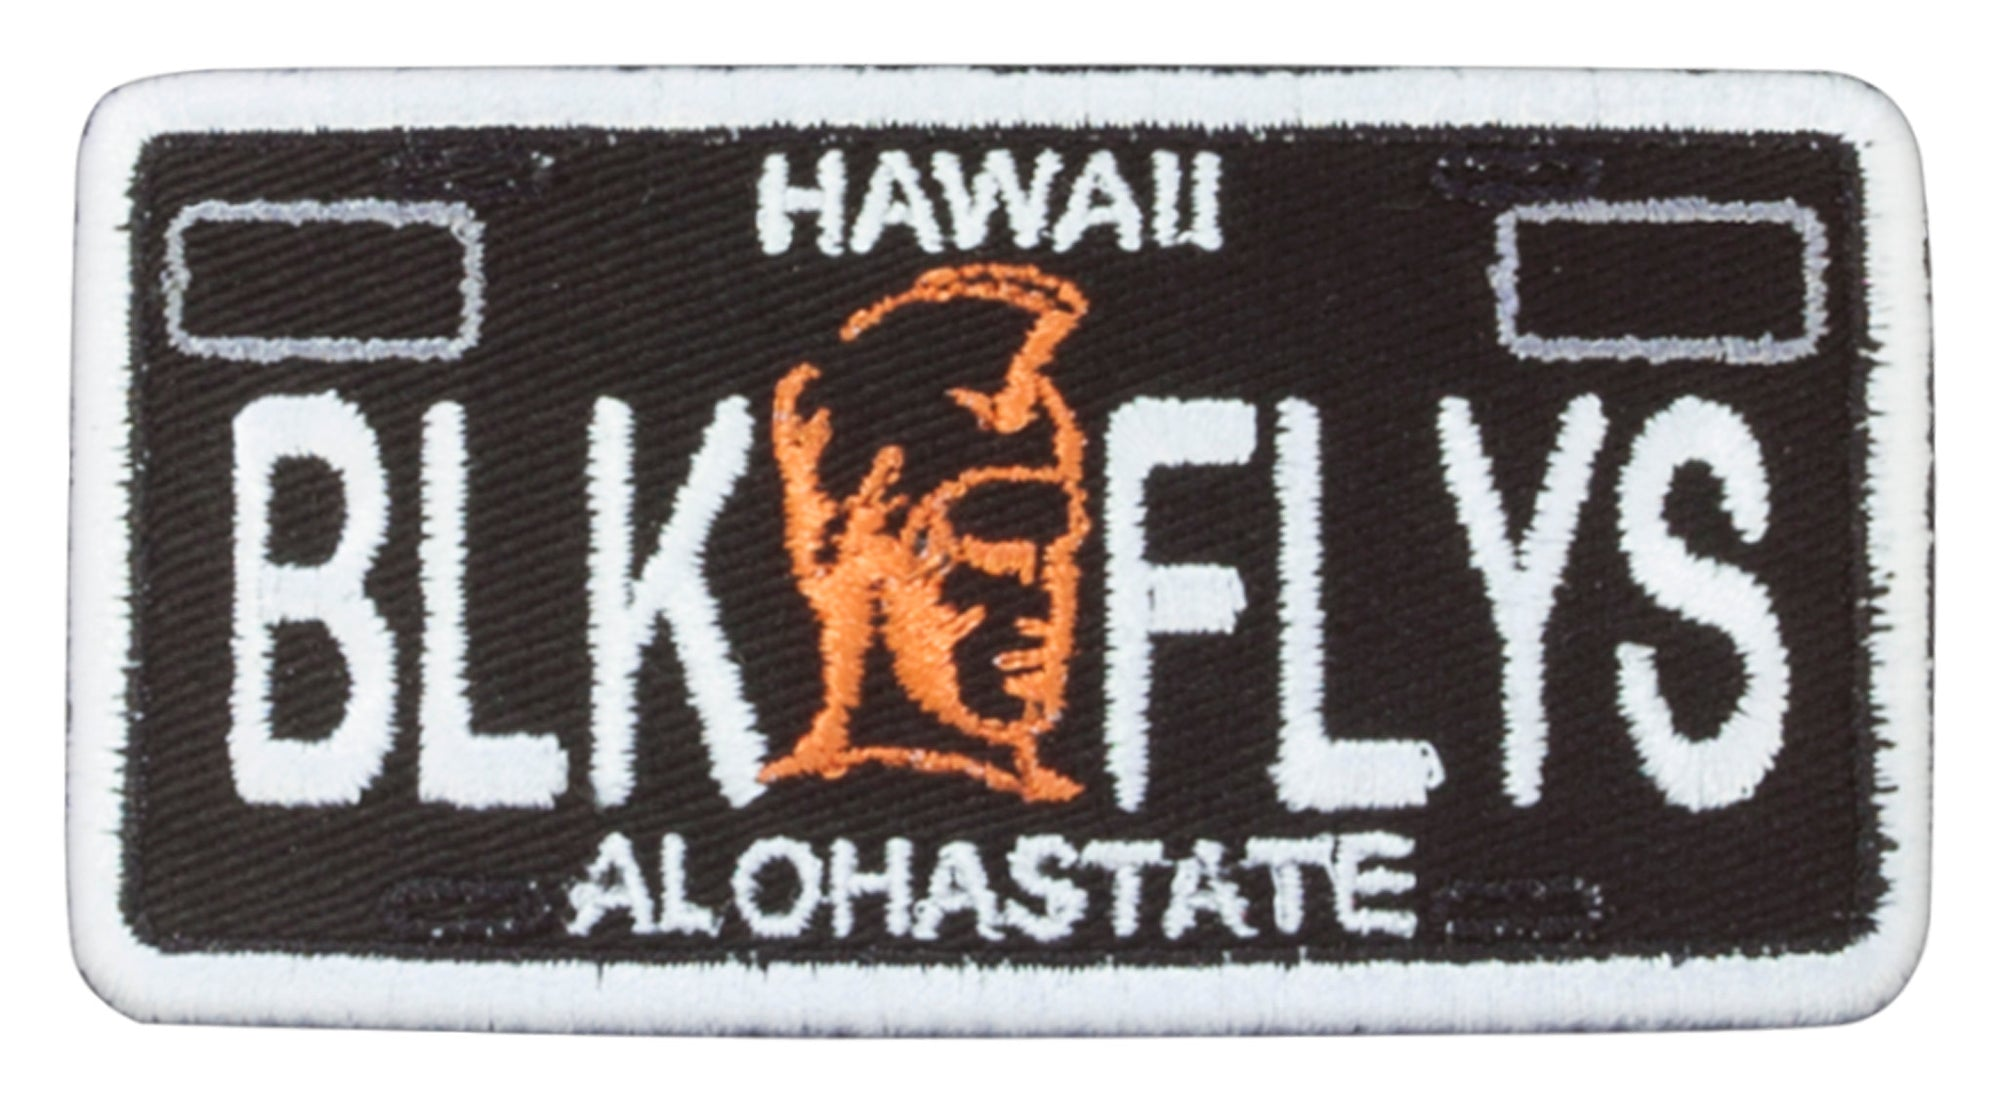 Hawaii Warrior Plate Patch